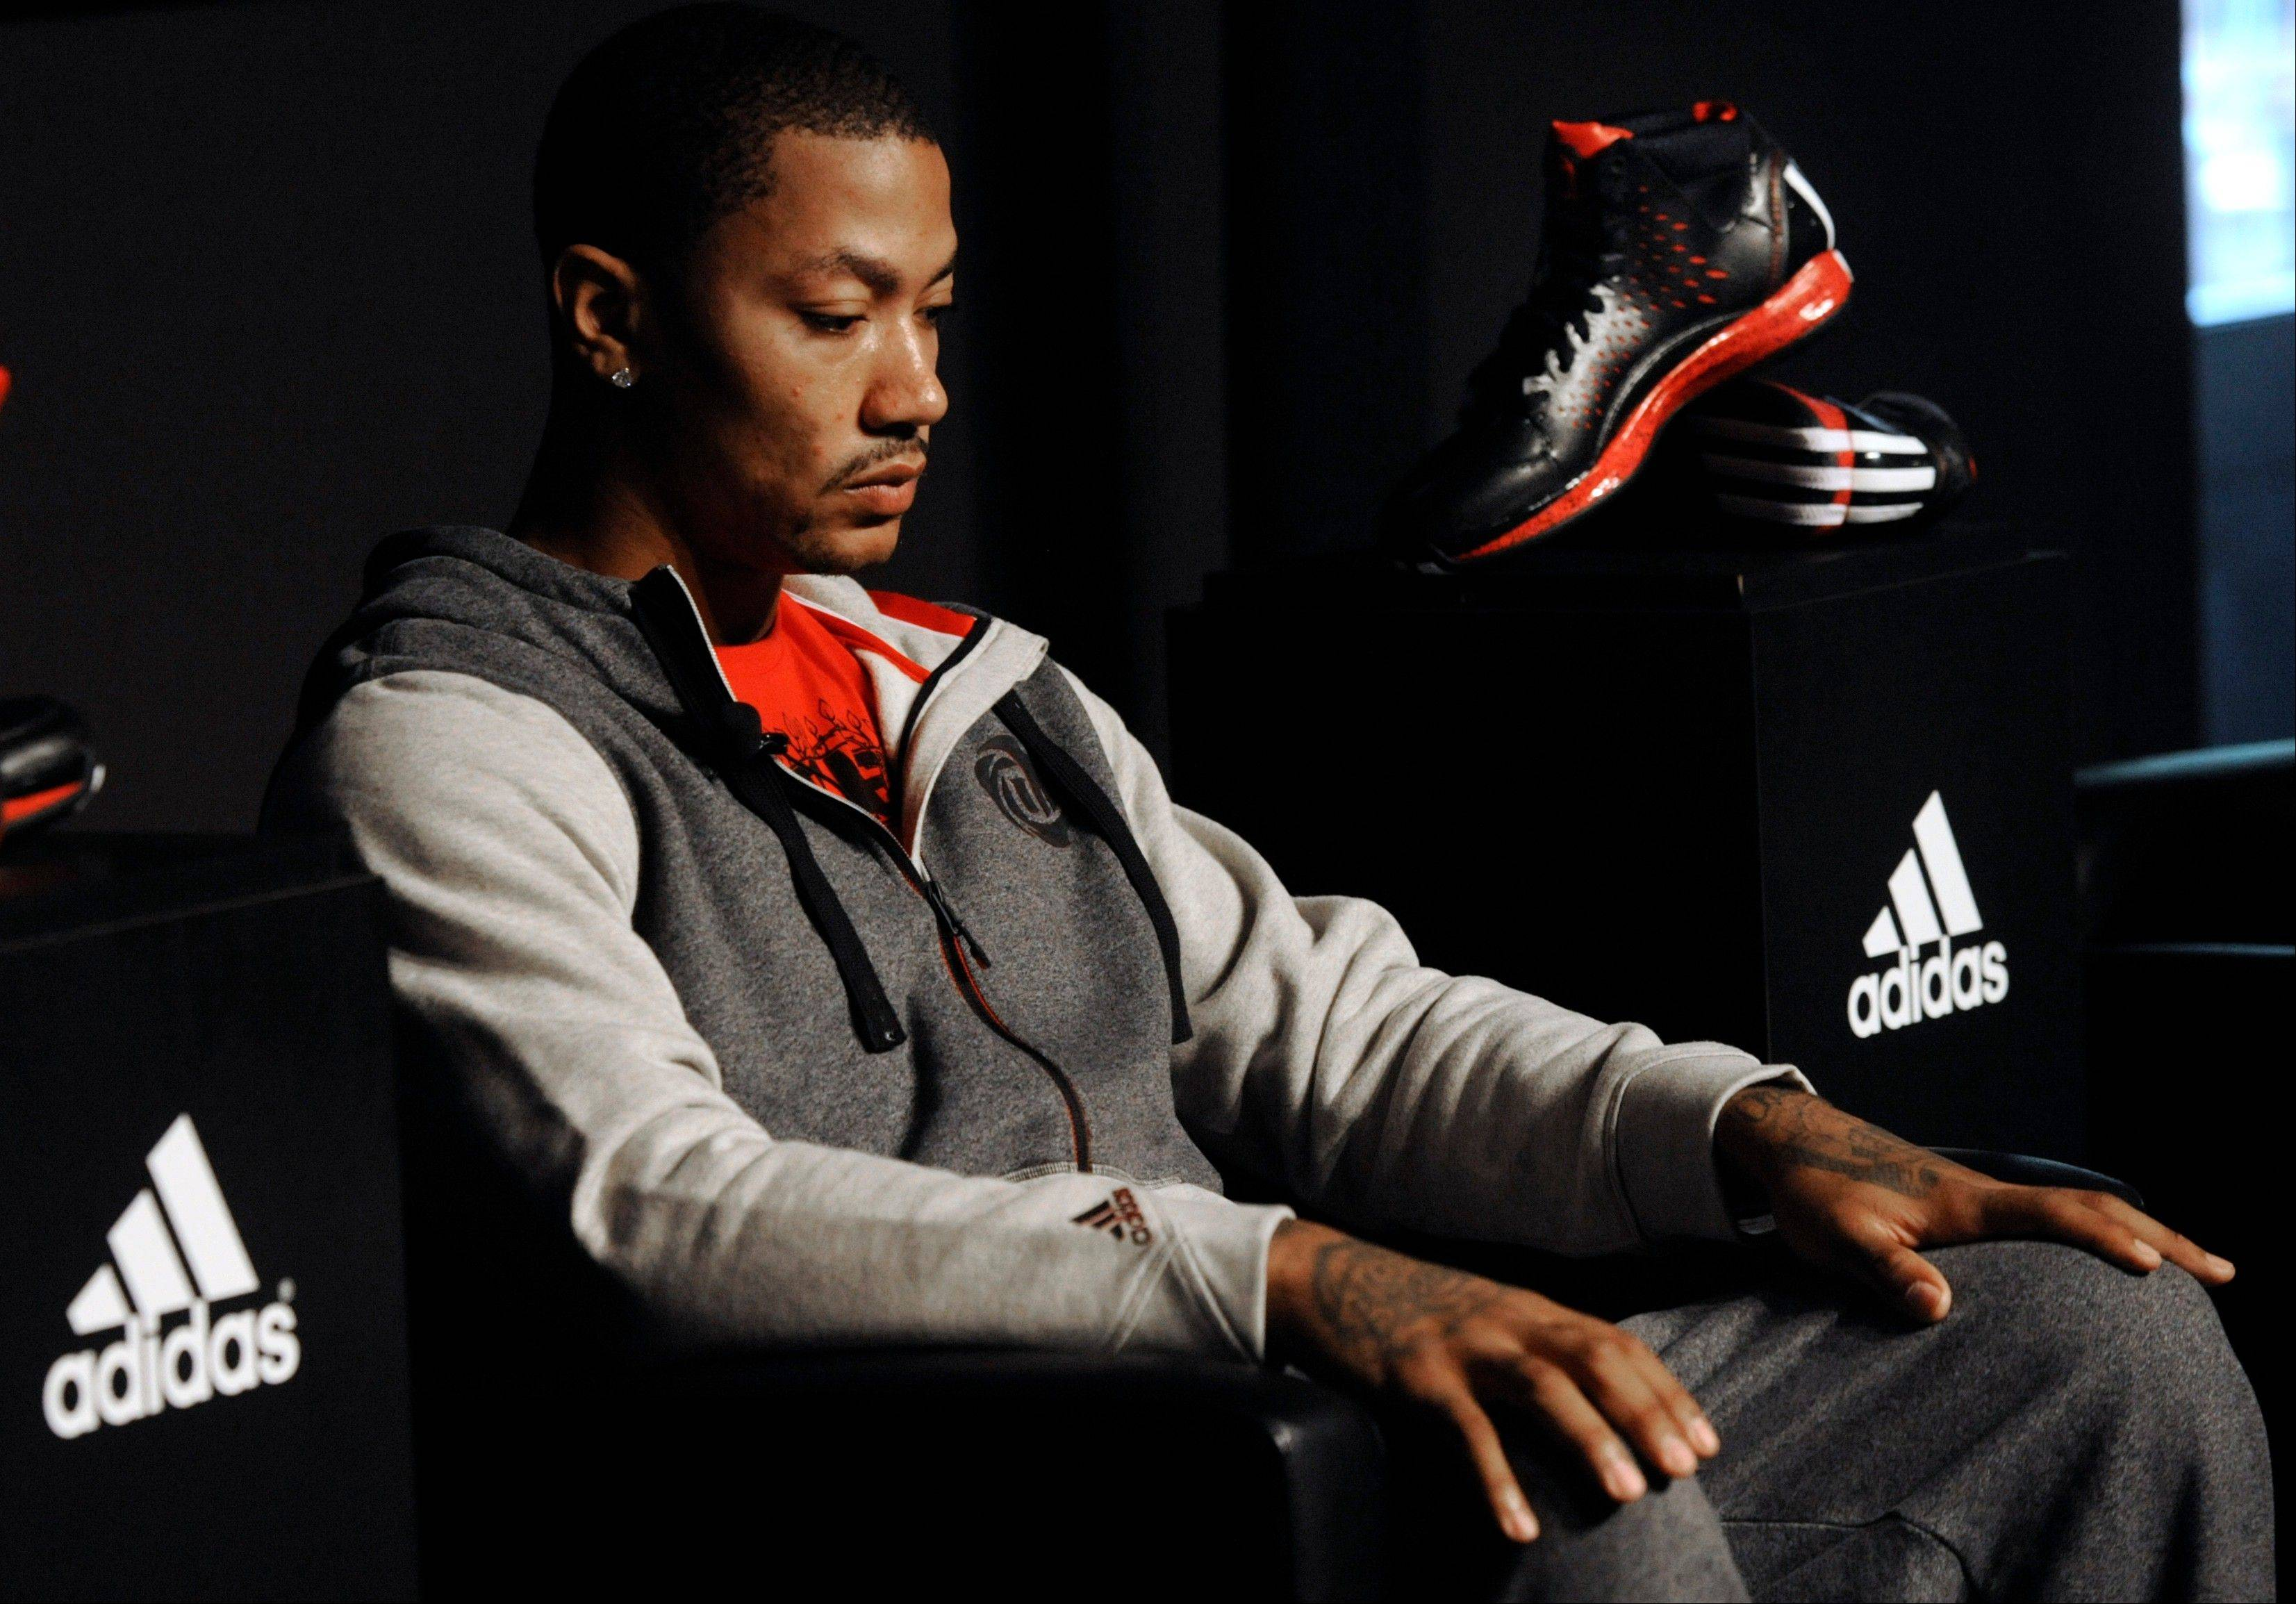 Bulls guard Derrick Rose is the face of Adidas, but now some industry experts say Adidas may need to rethink its NBA marketing campaign and find a viable replacement as Chicago's superstar sits out a second NBA season due to injury.